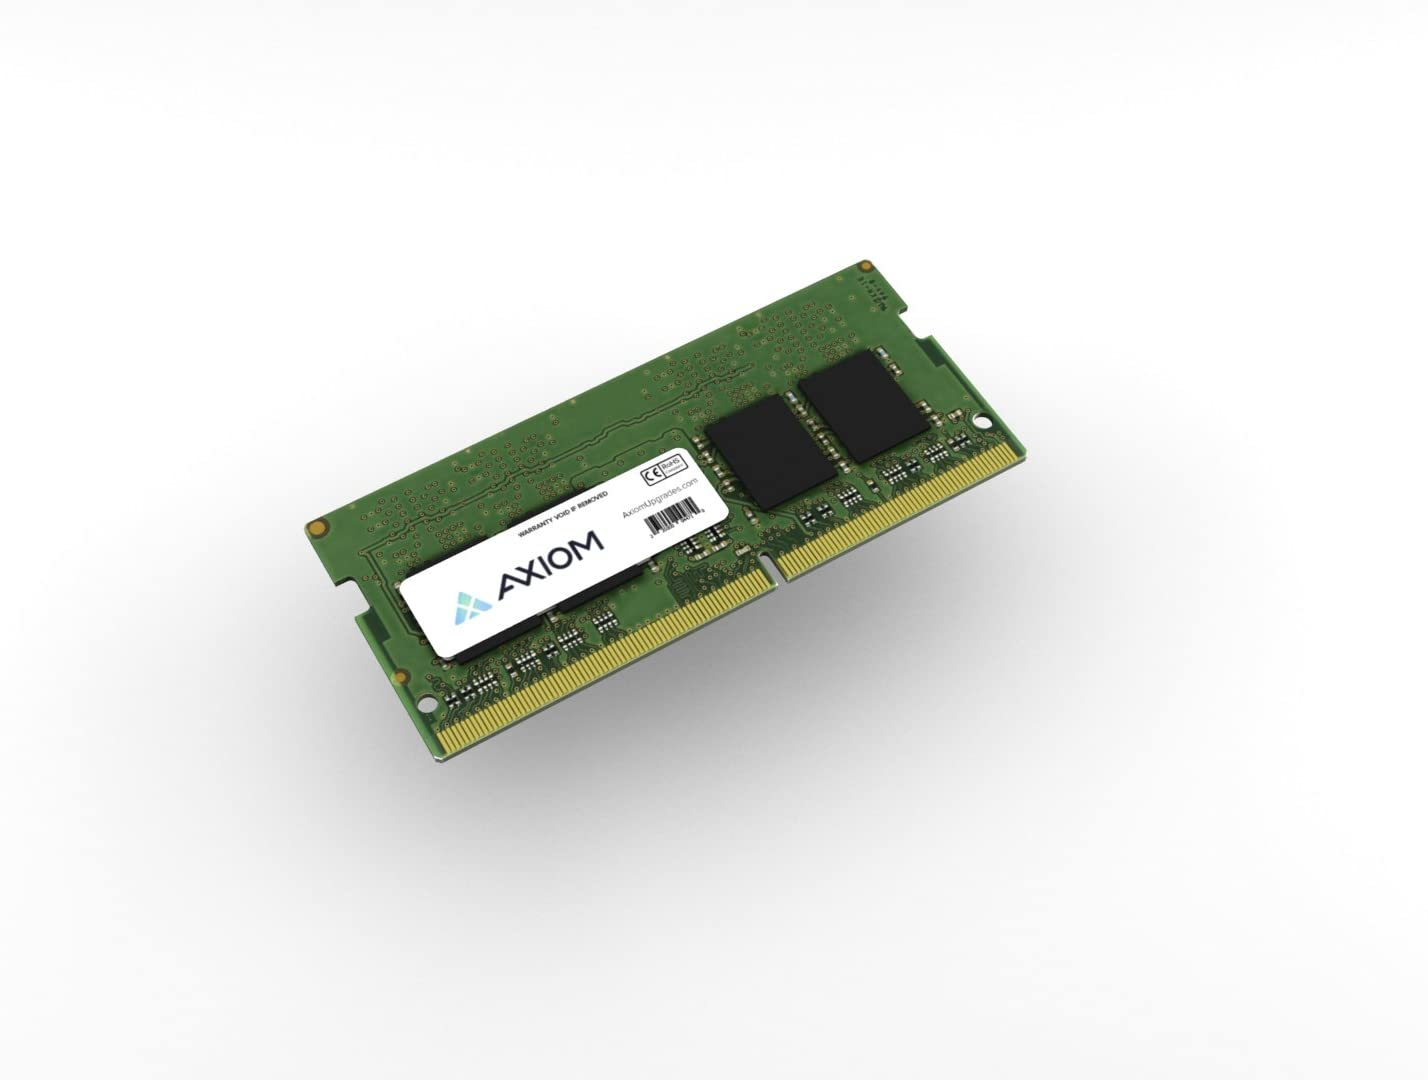 P1N54AA Certified for HP Memory 8GB DDR4 2133MHz PC4-17000 260-PIN SODIMM RAM